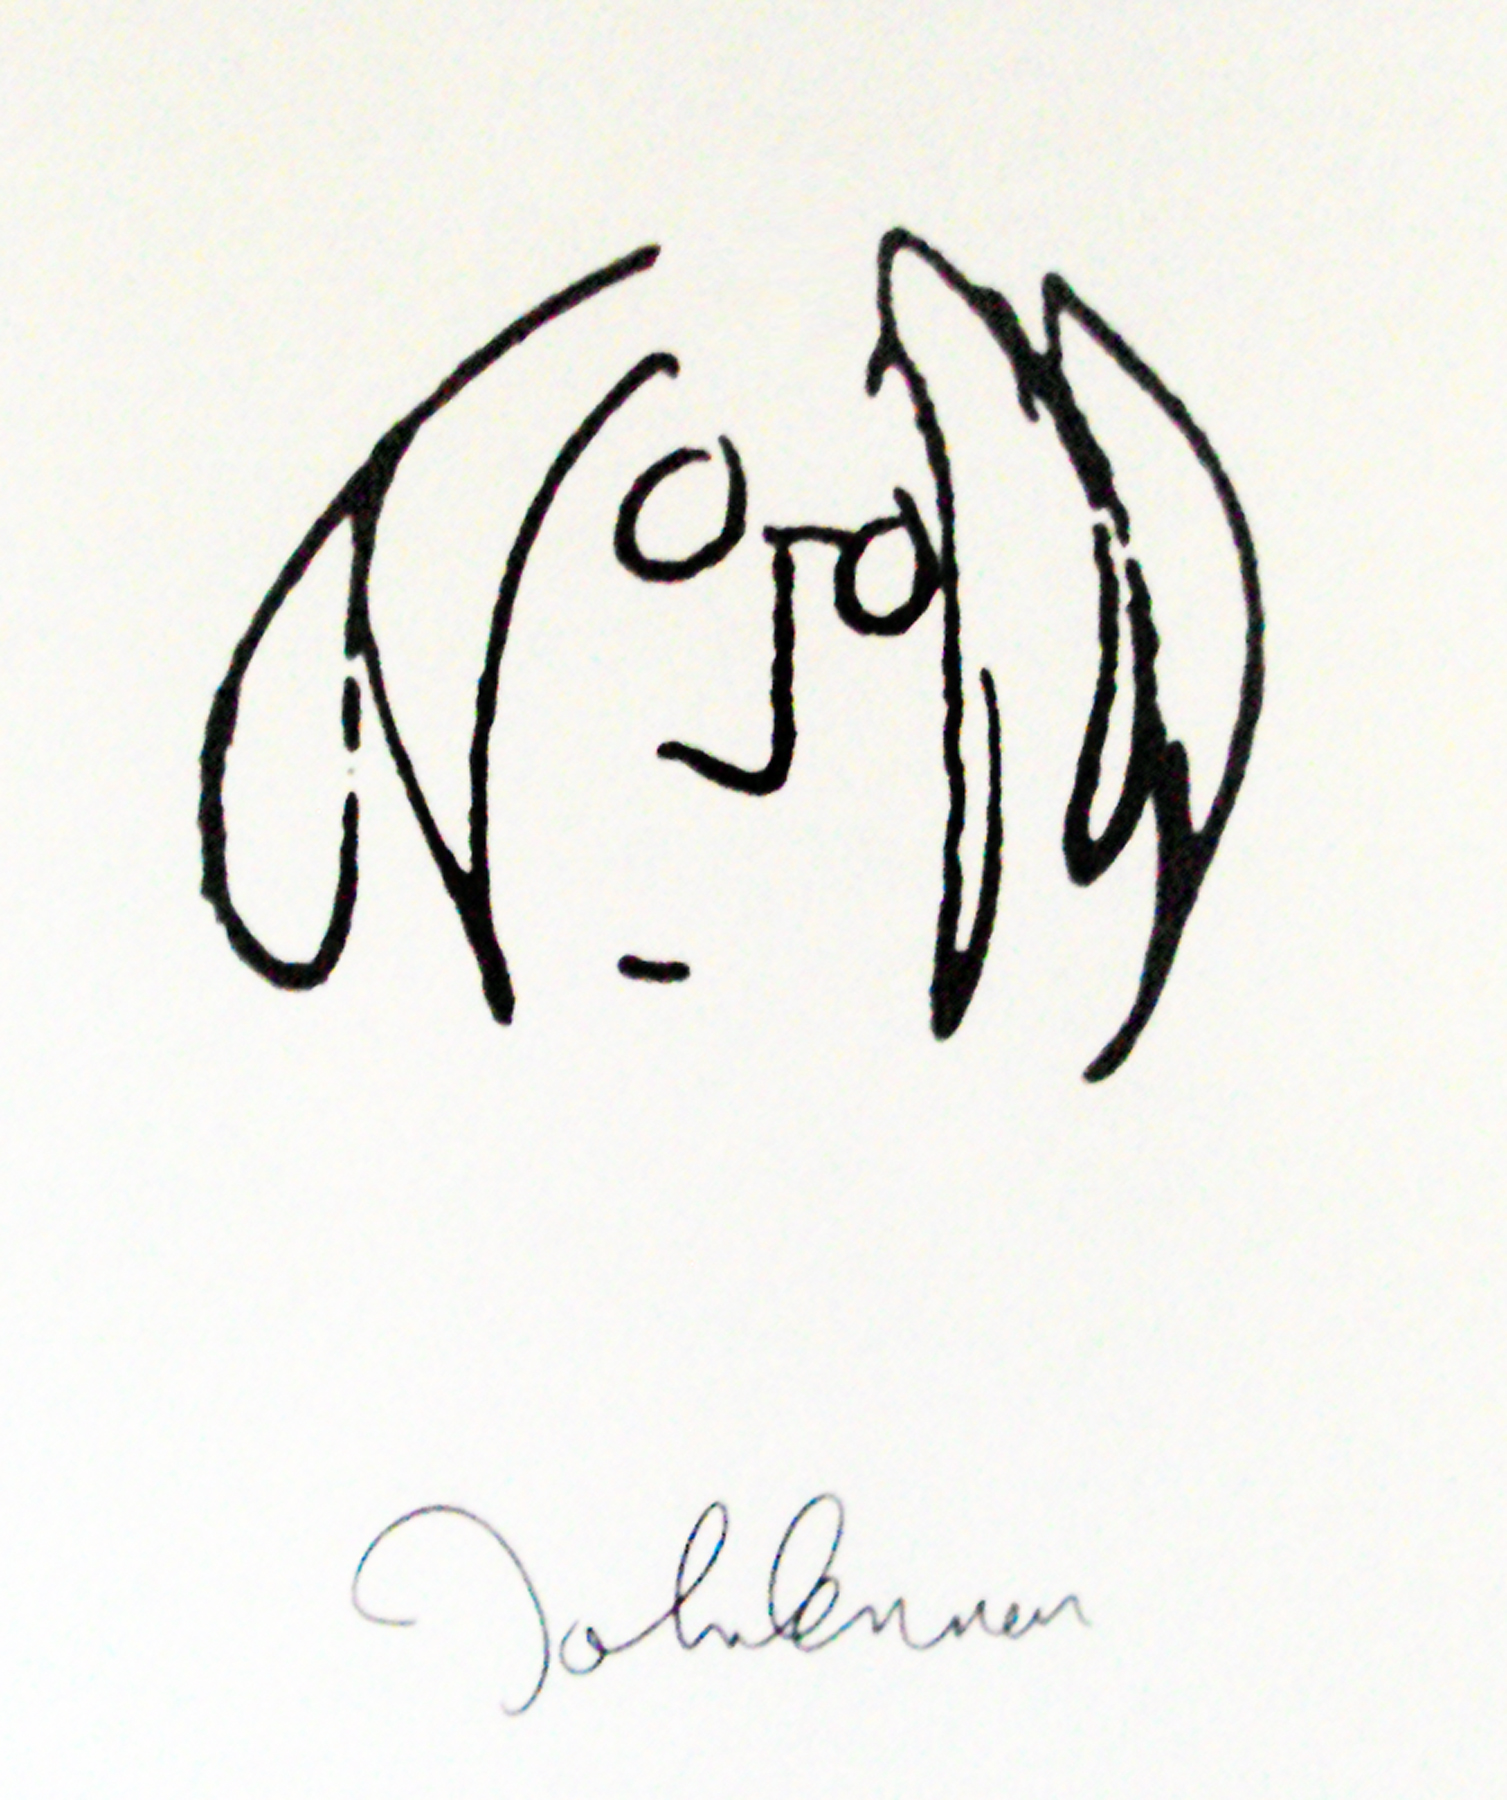 John Lennon Art for Sale